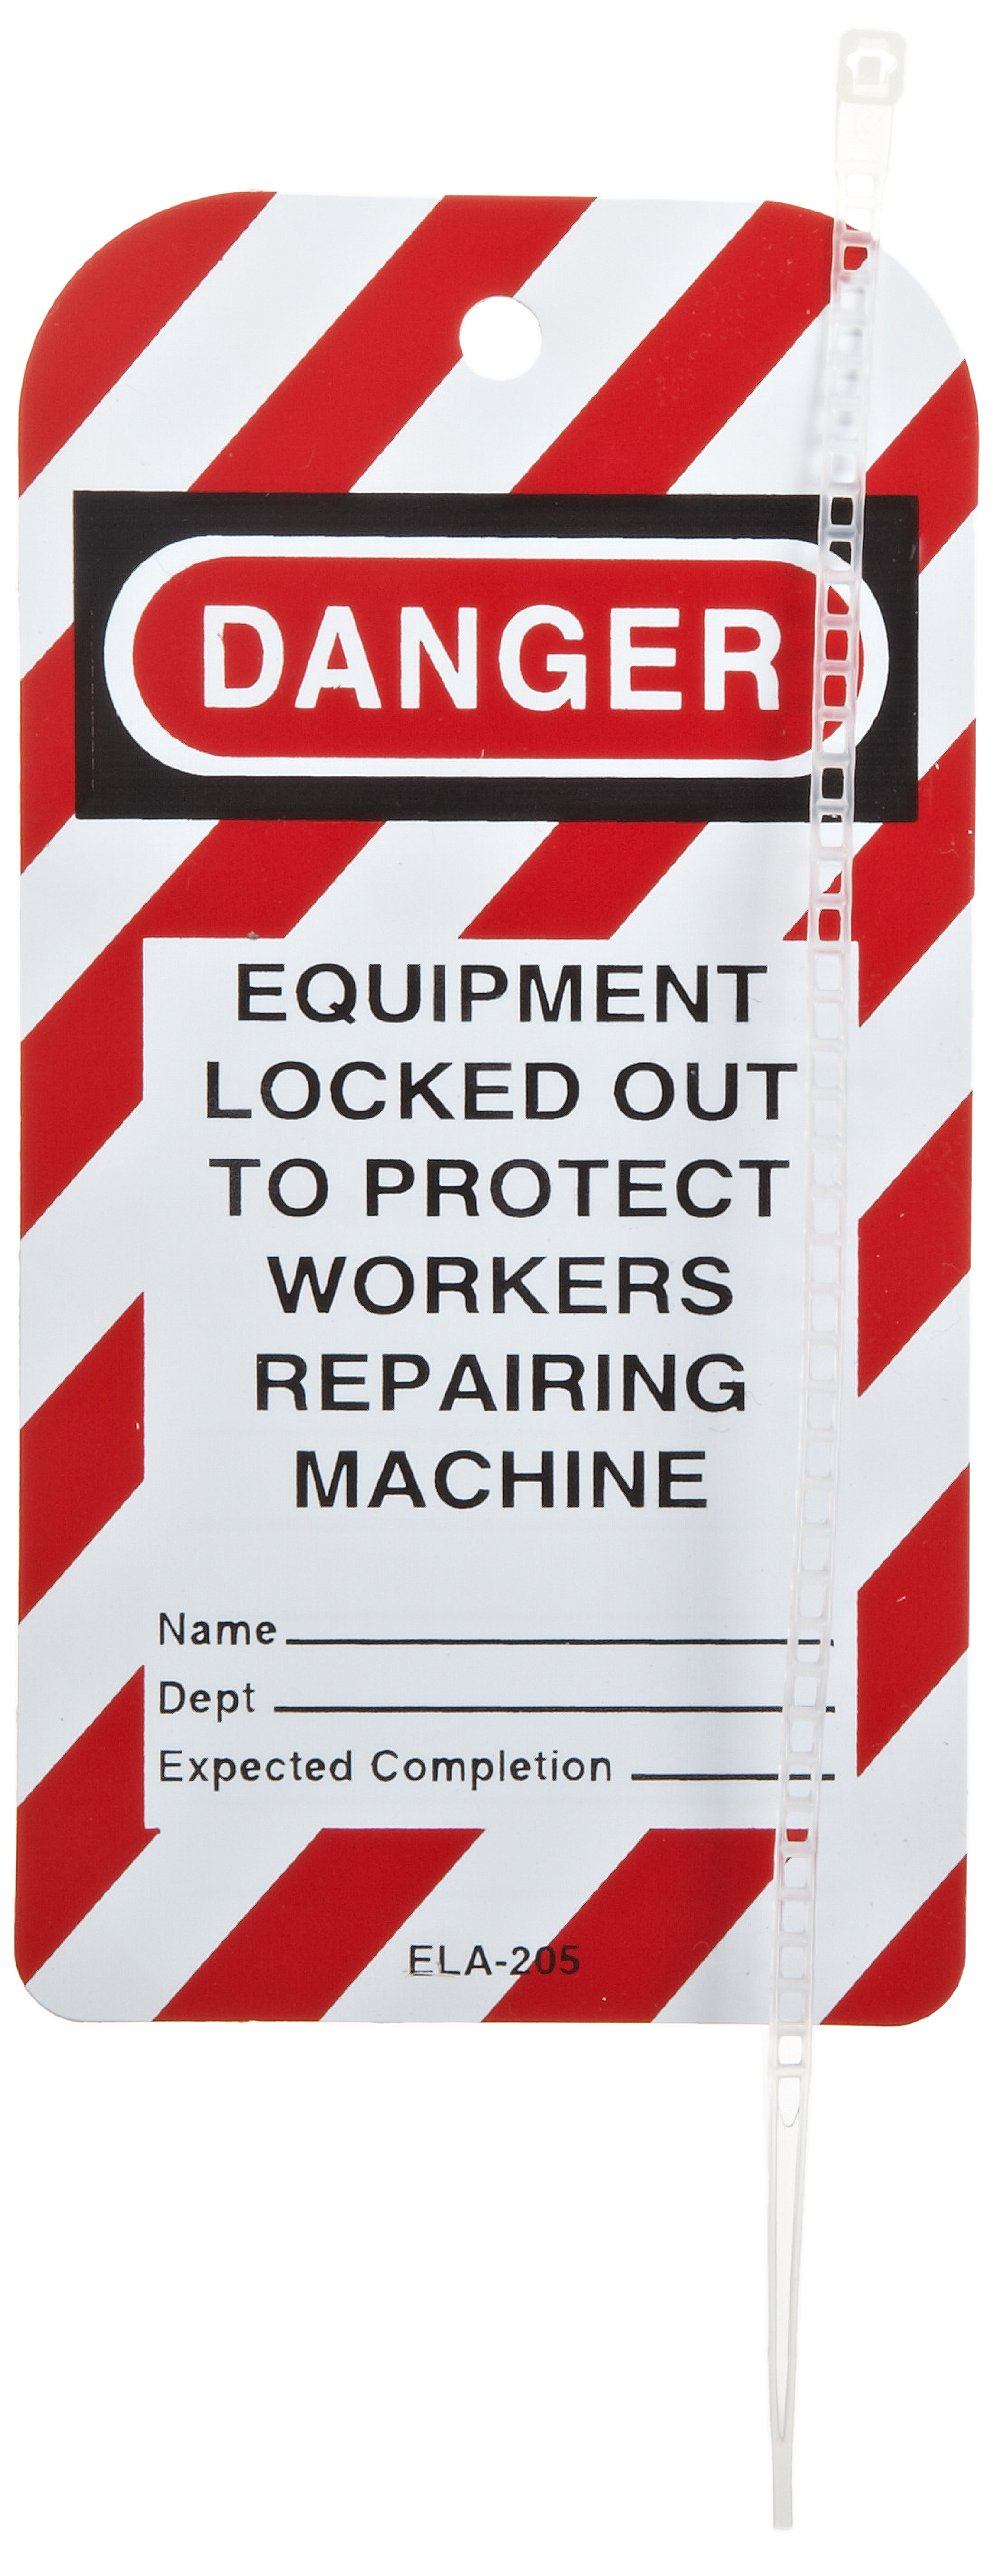 North Safety''Danger - Equipment Locked Out To Protect Workers Repairing Machine'' Styrene Tag with Reverse Side Dismissal Warning, 5-3/4'' Length, 3'' Width